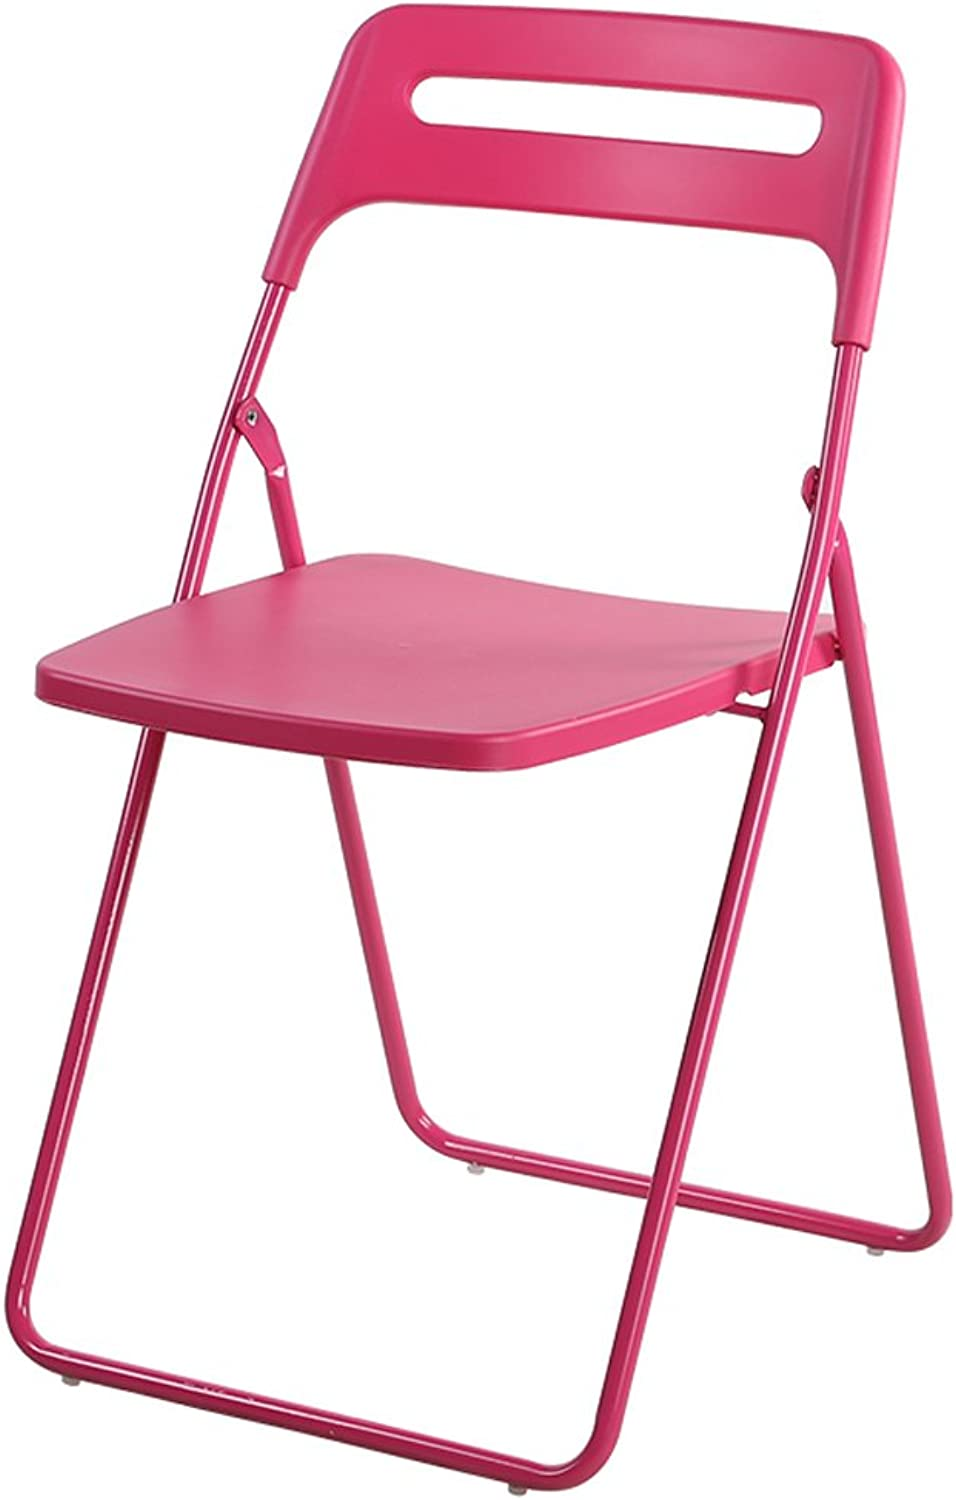 Folding Chair Portable Conference Chair Adult Dining Chair Student Plastic Stool Household Chair (color   Pink)